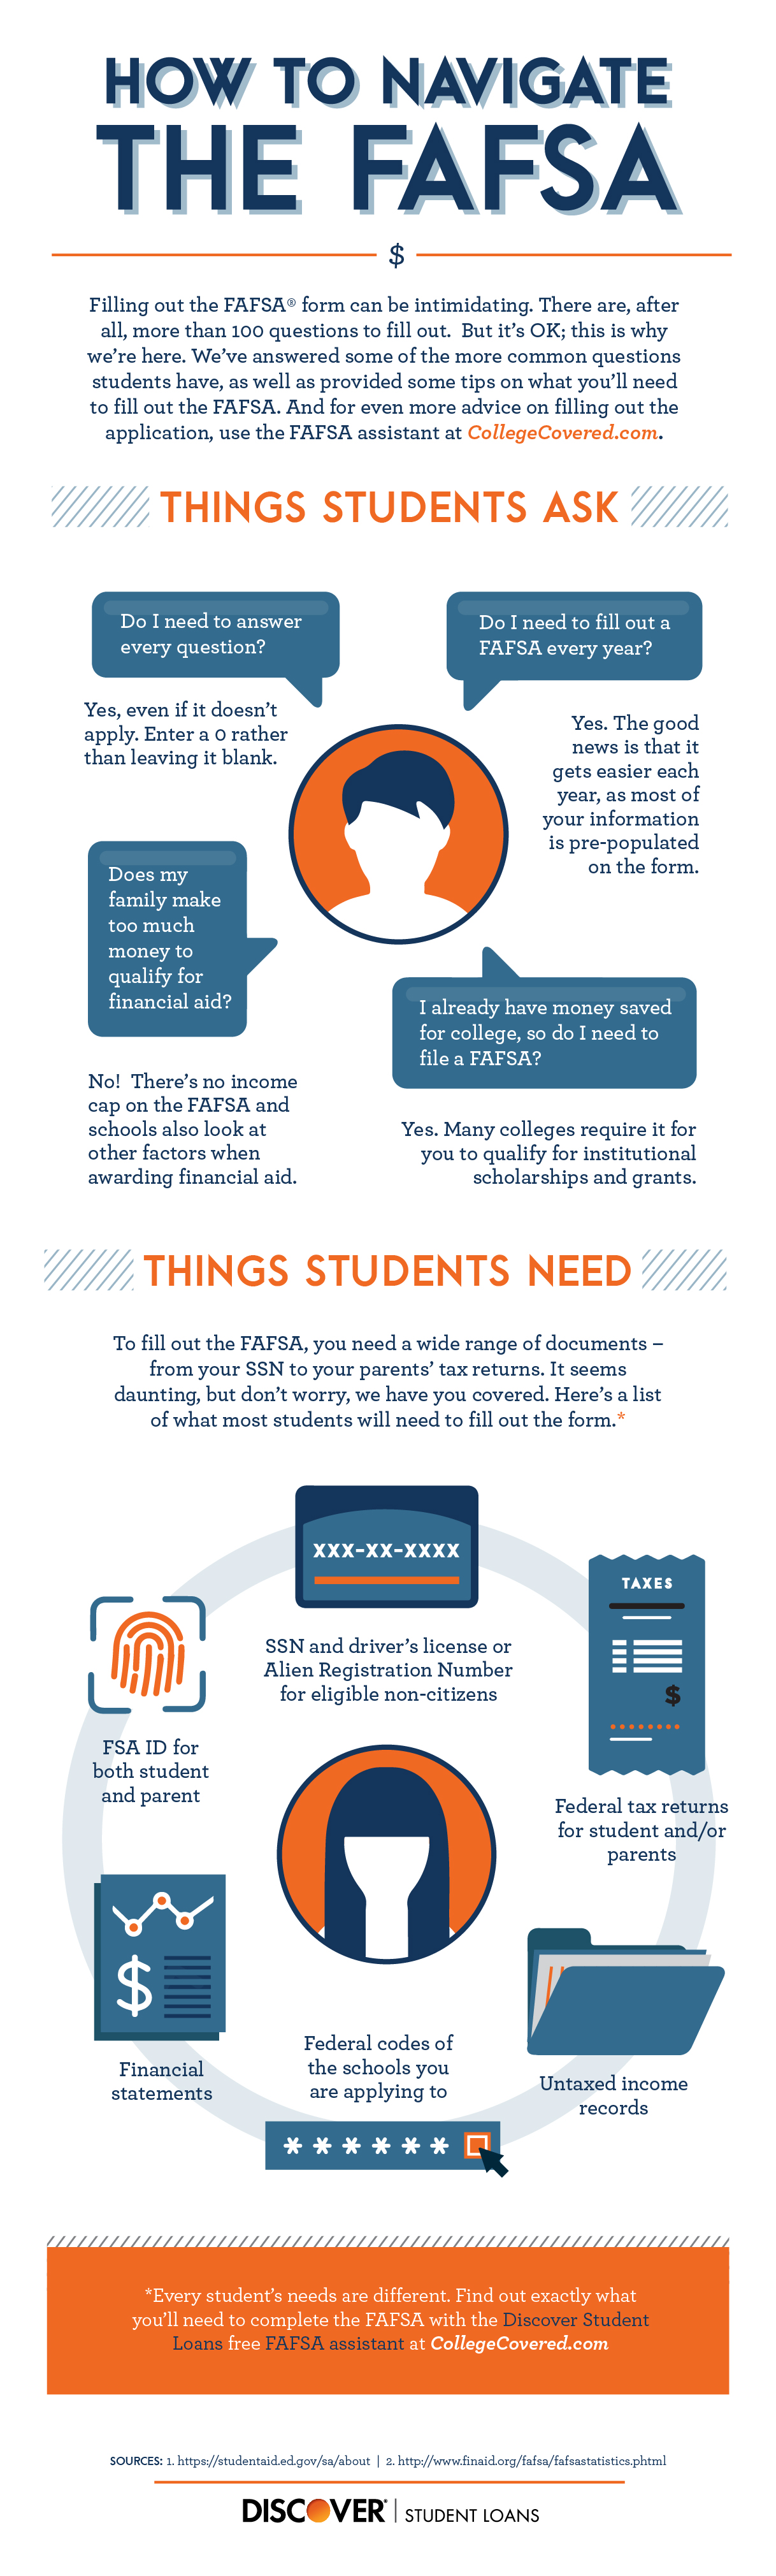 how-to-navigate-the-fafsa-infographic